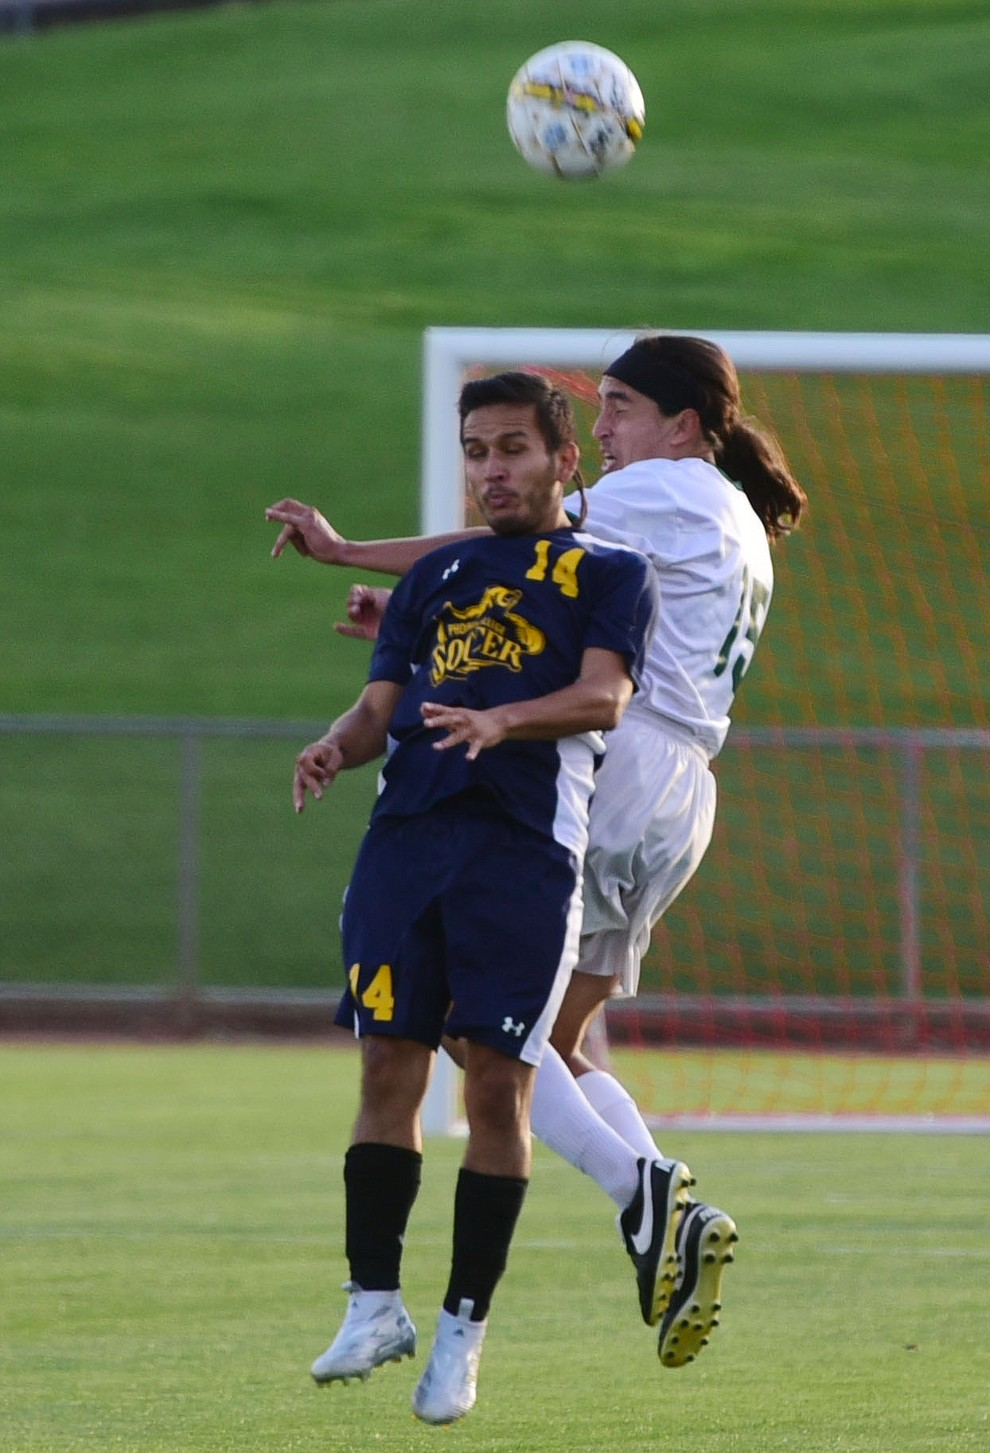 Yavapai's John Kanner heads the ball over Sebastian Aguas as the Roughriders take on the Phoenix College Bears Tuesday night at Mountain Valley Park in Prescott Valley. (Les Stukenberg/Courier).